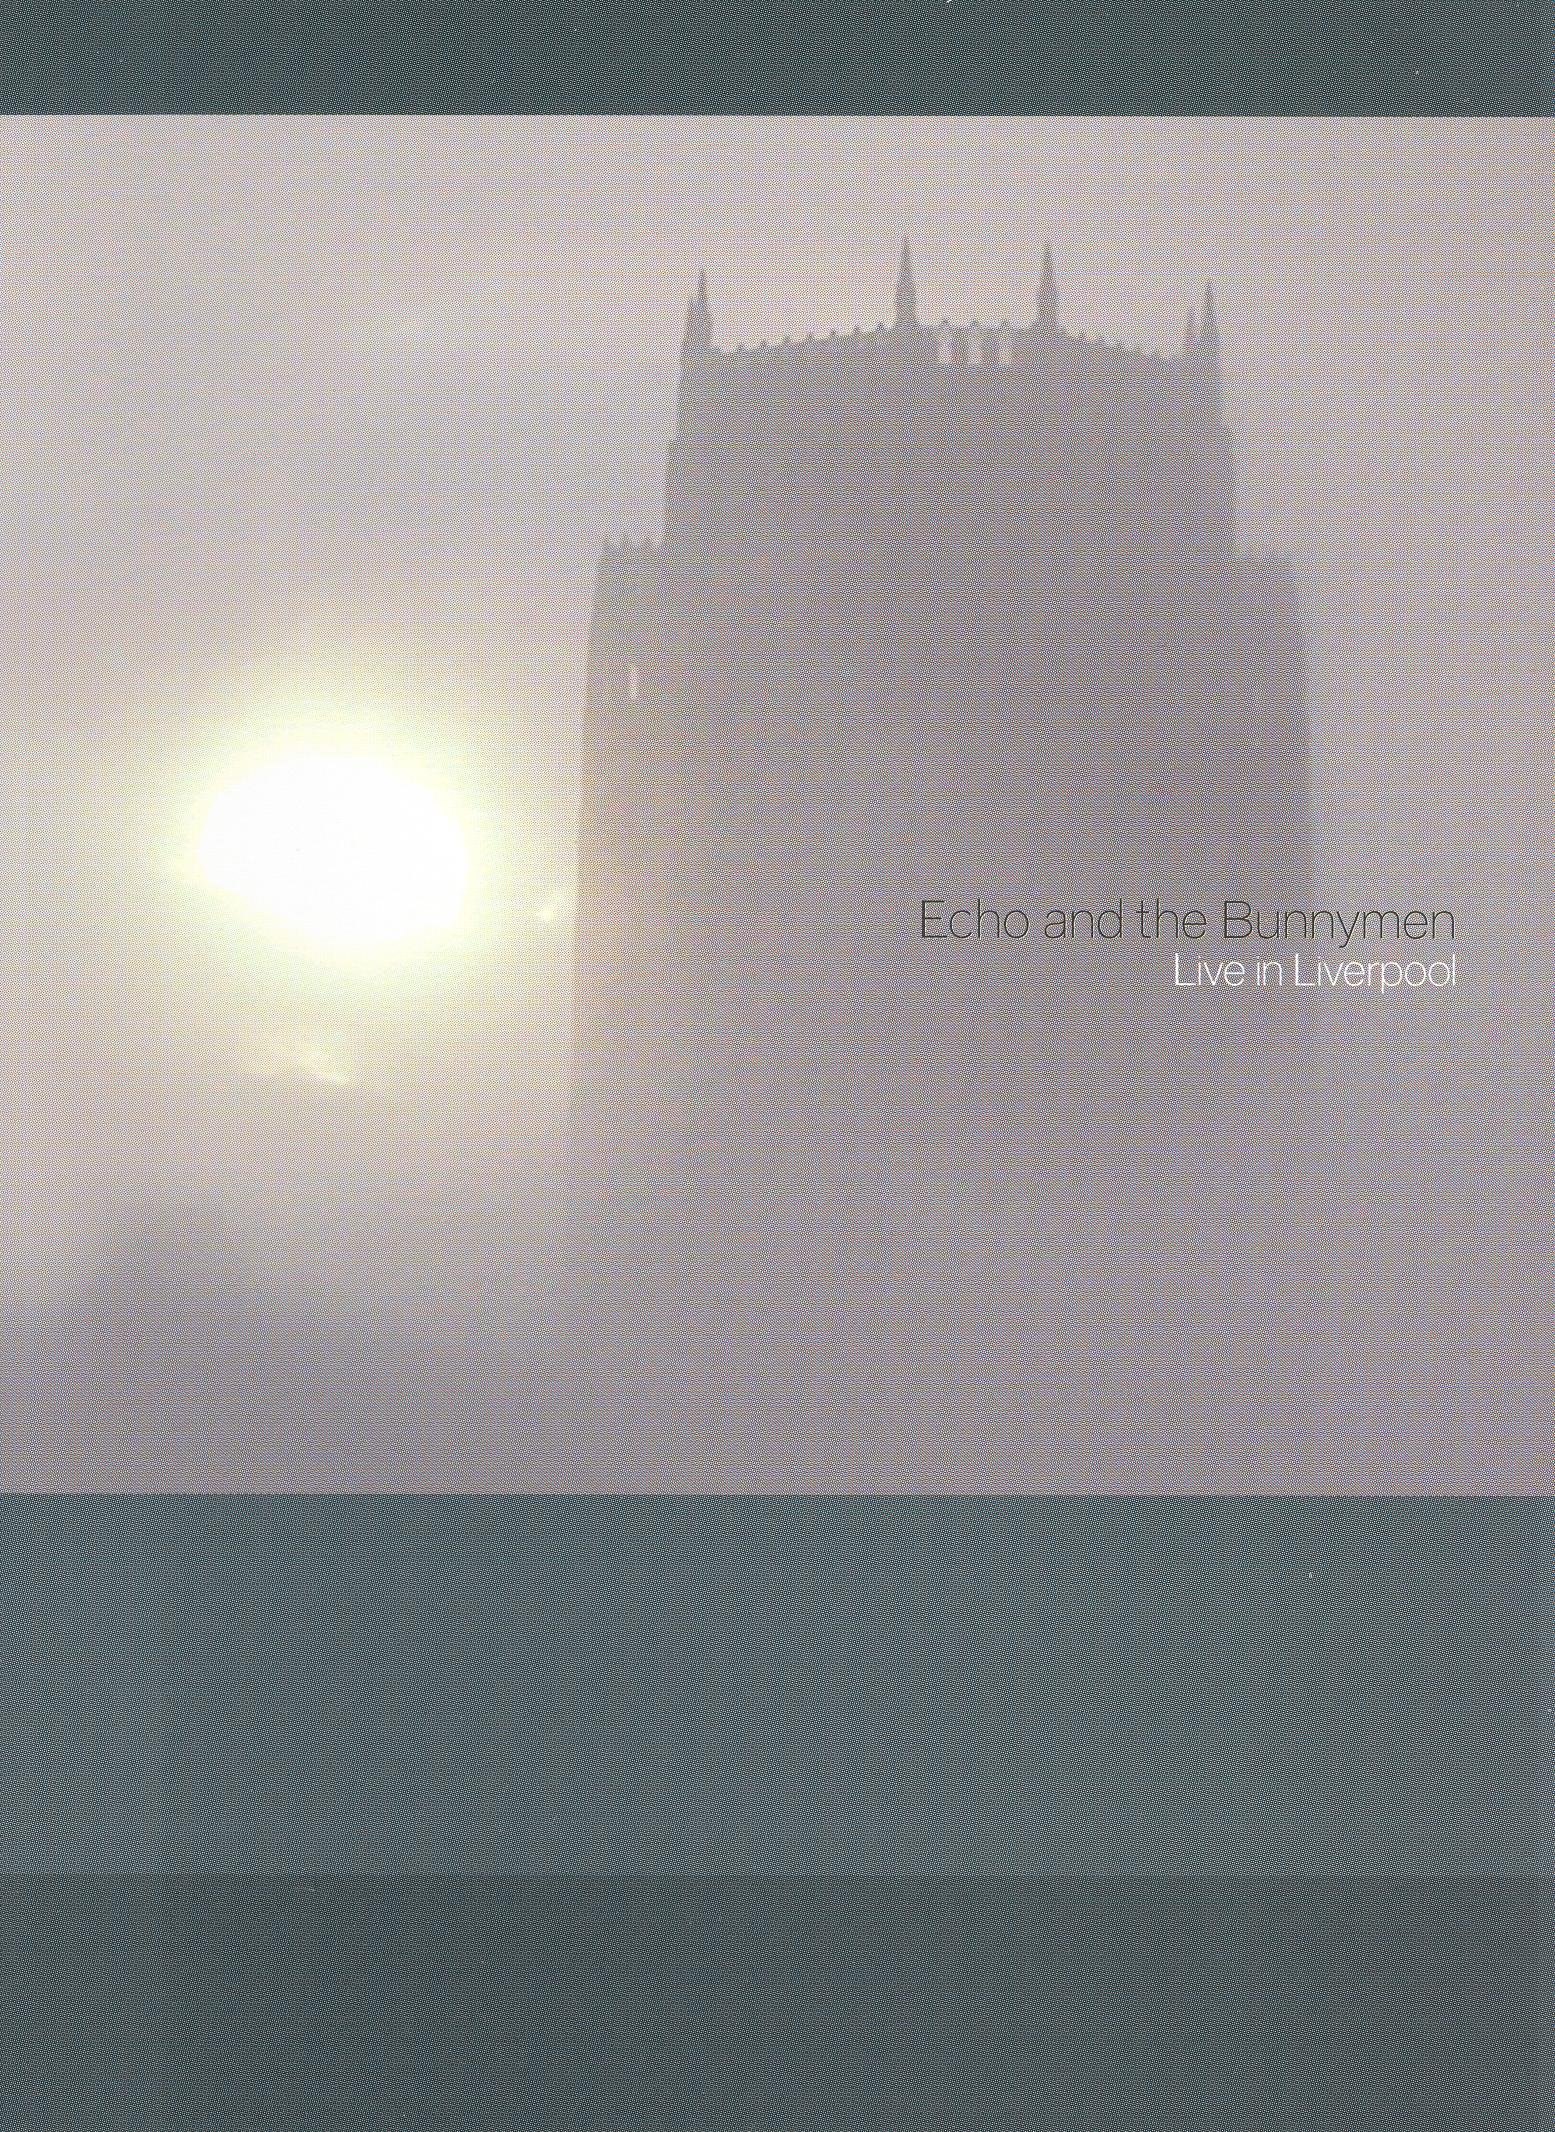 Echo and the Bunnymen: Live in Liverpool